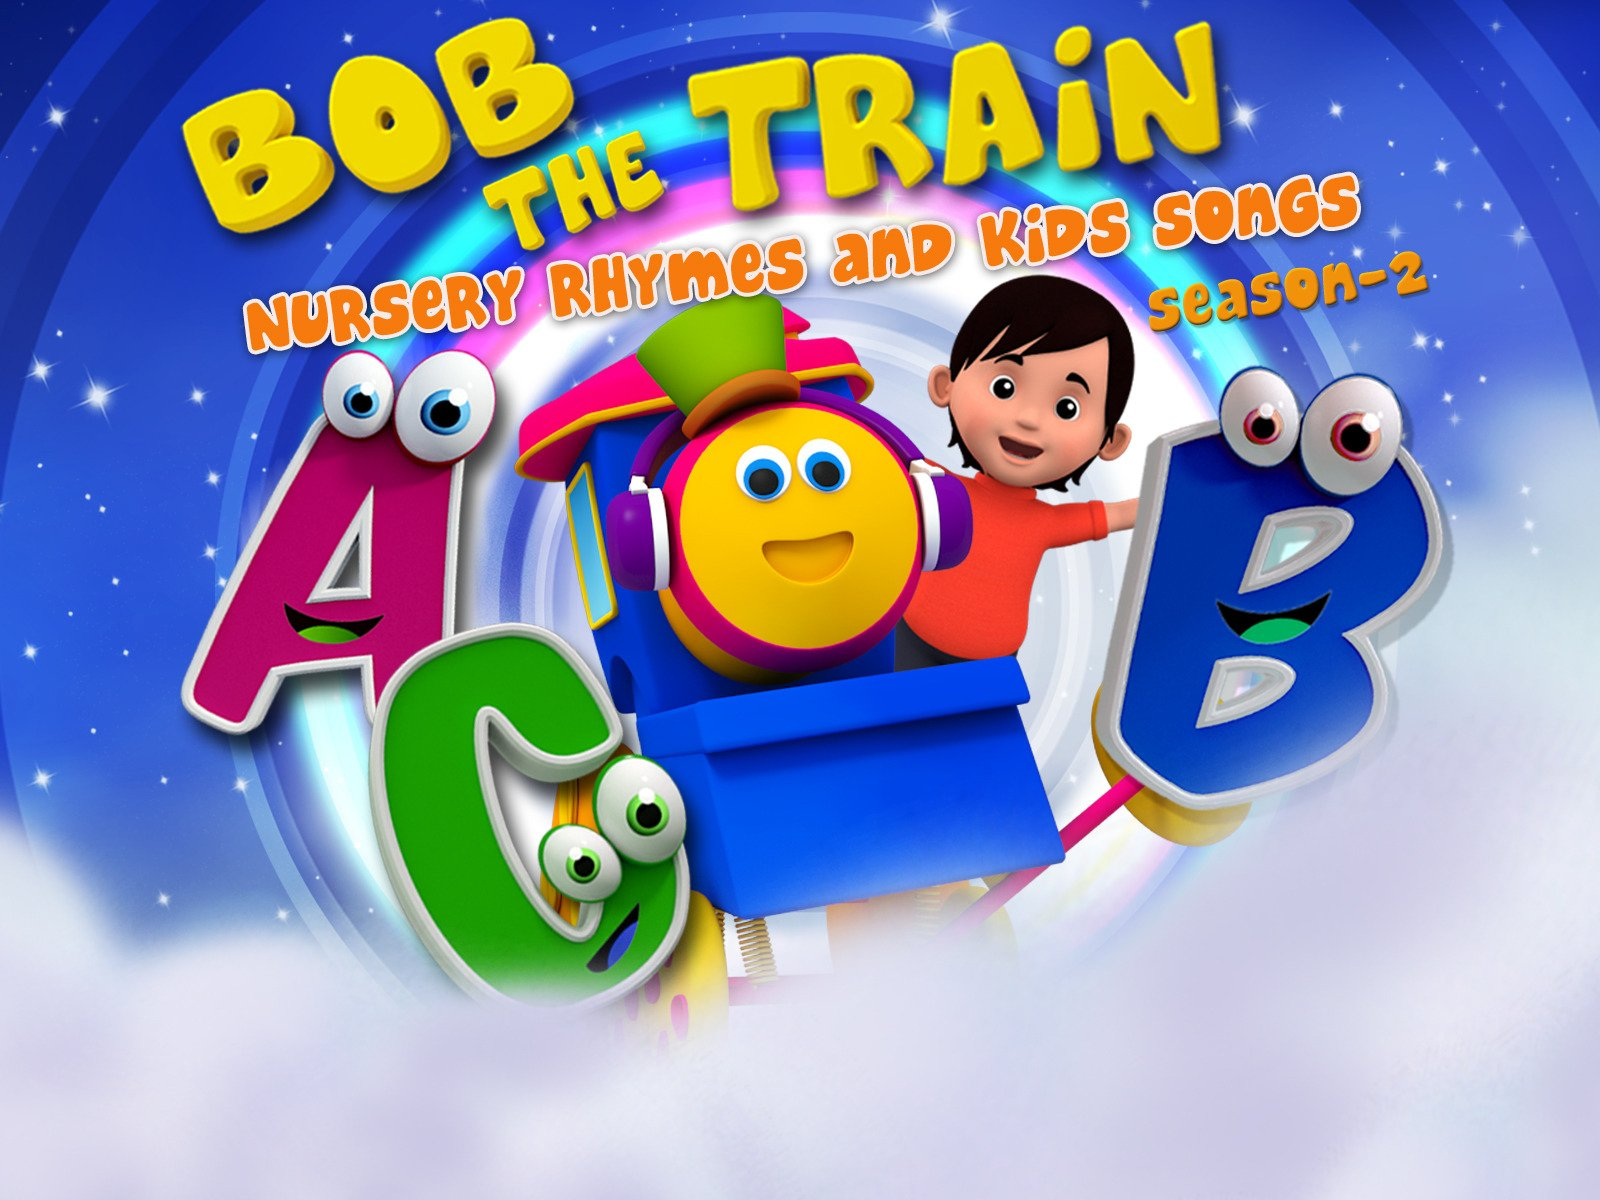 Bob the Train: Nursery Rhymes and Kids Songs - Season 2